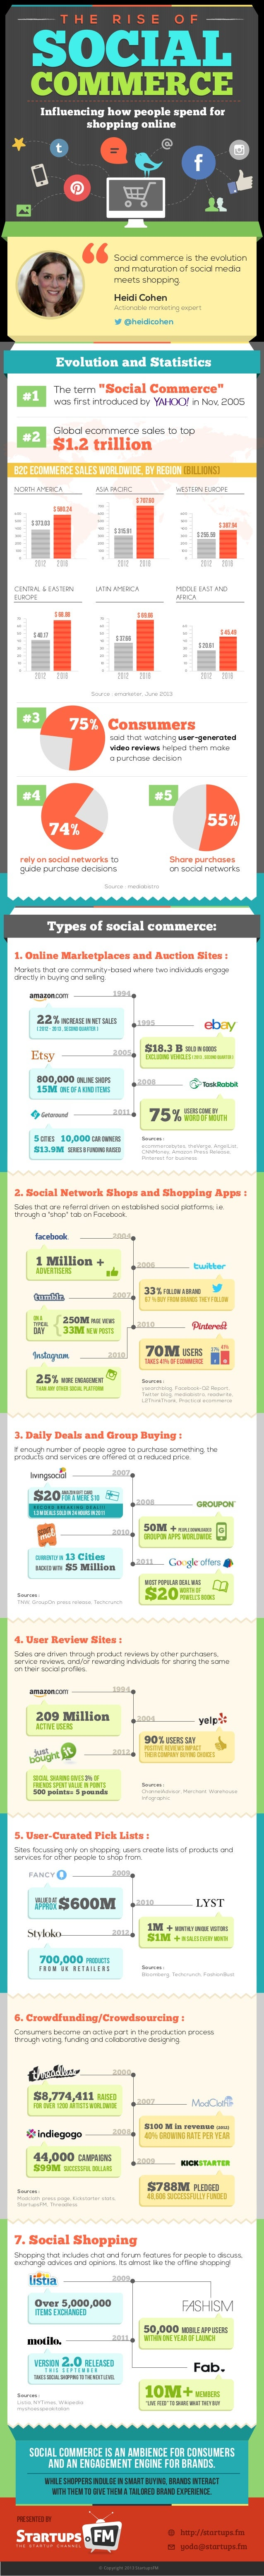 7. Social Shopping Shopping that includes chat and forum features for people to discuss, exchange advices and opinions. It...